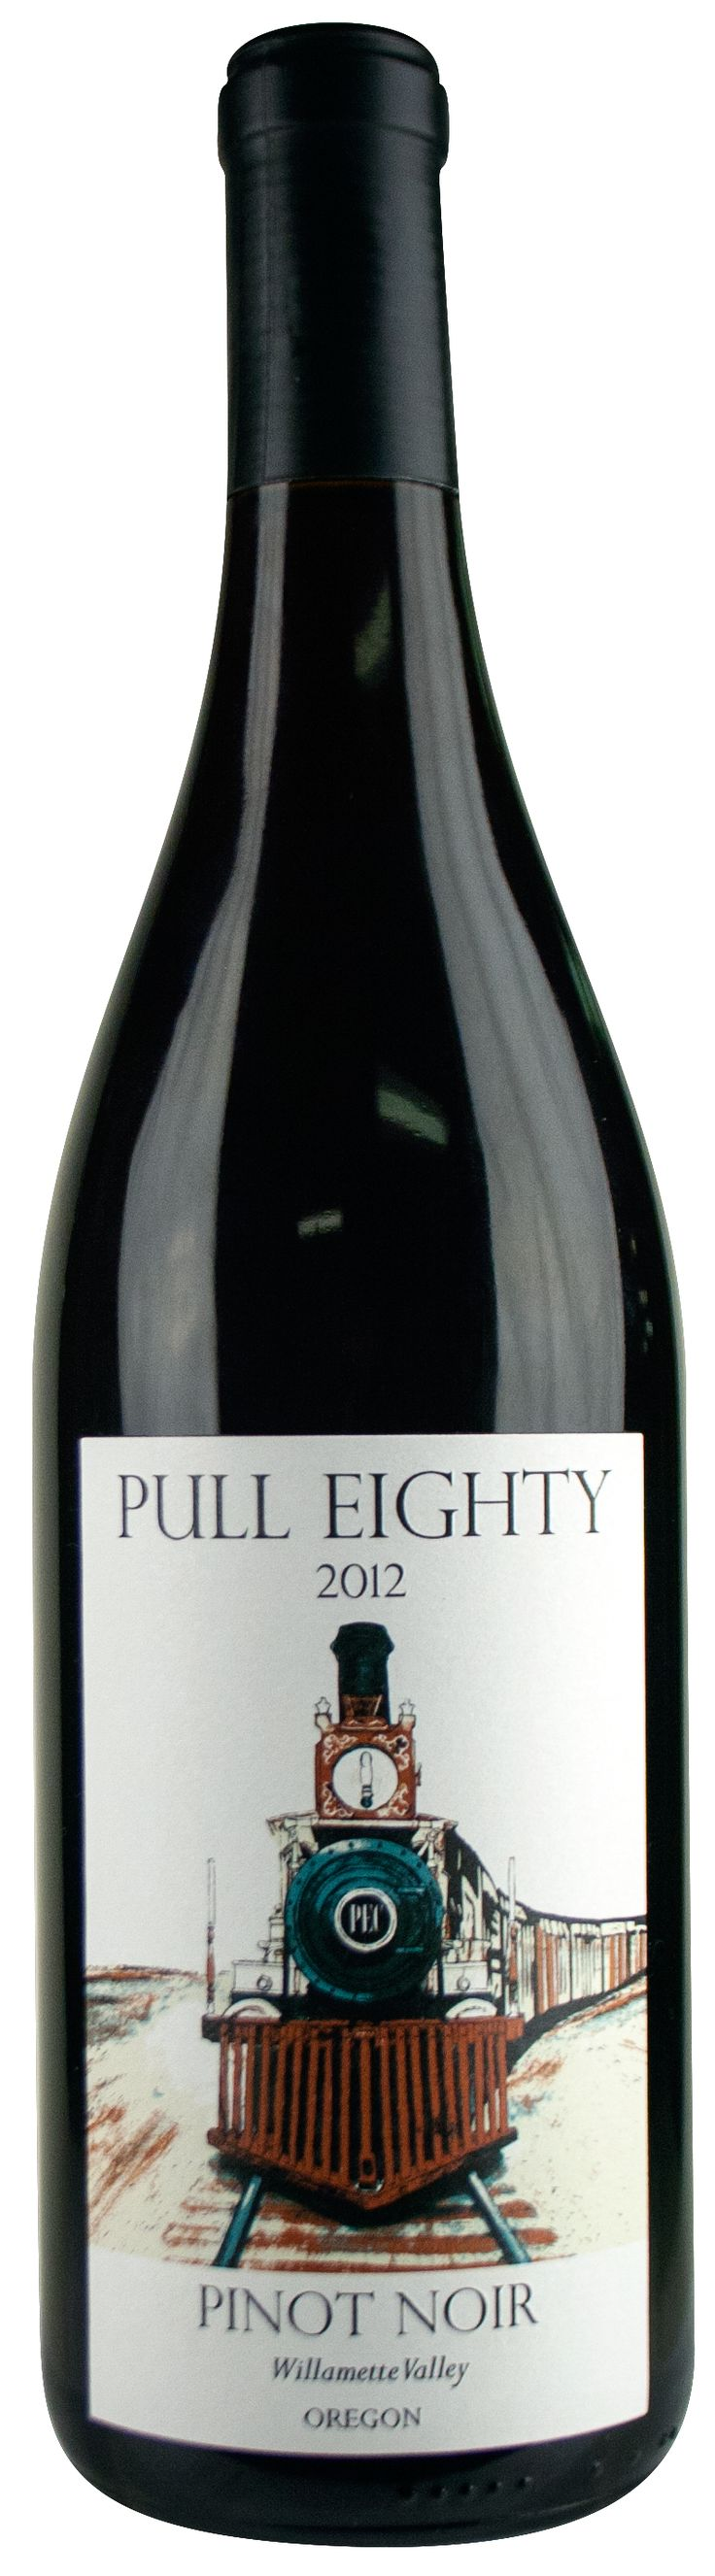 "-- From a 97 point-rated vintage from Oregon Pinot Noir, among the ""greatest in thirty-five years of winemaking experience"" -- Hails from two sustainably-farmed single vineyards in the heart of Willamette Valley."